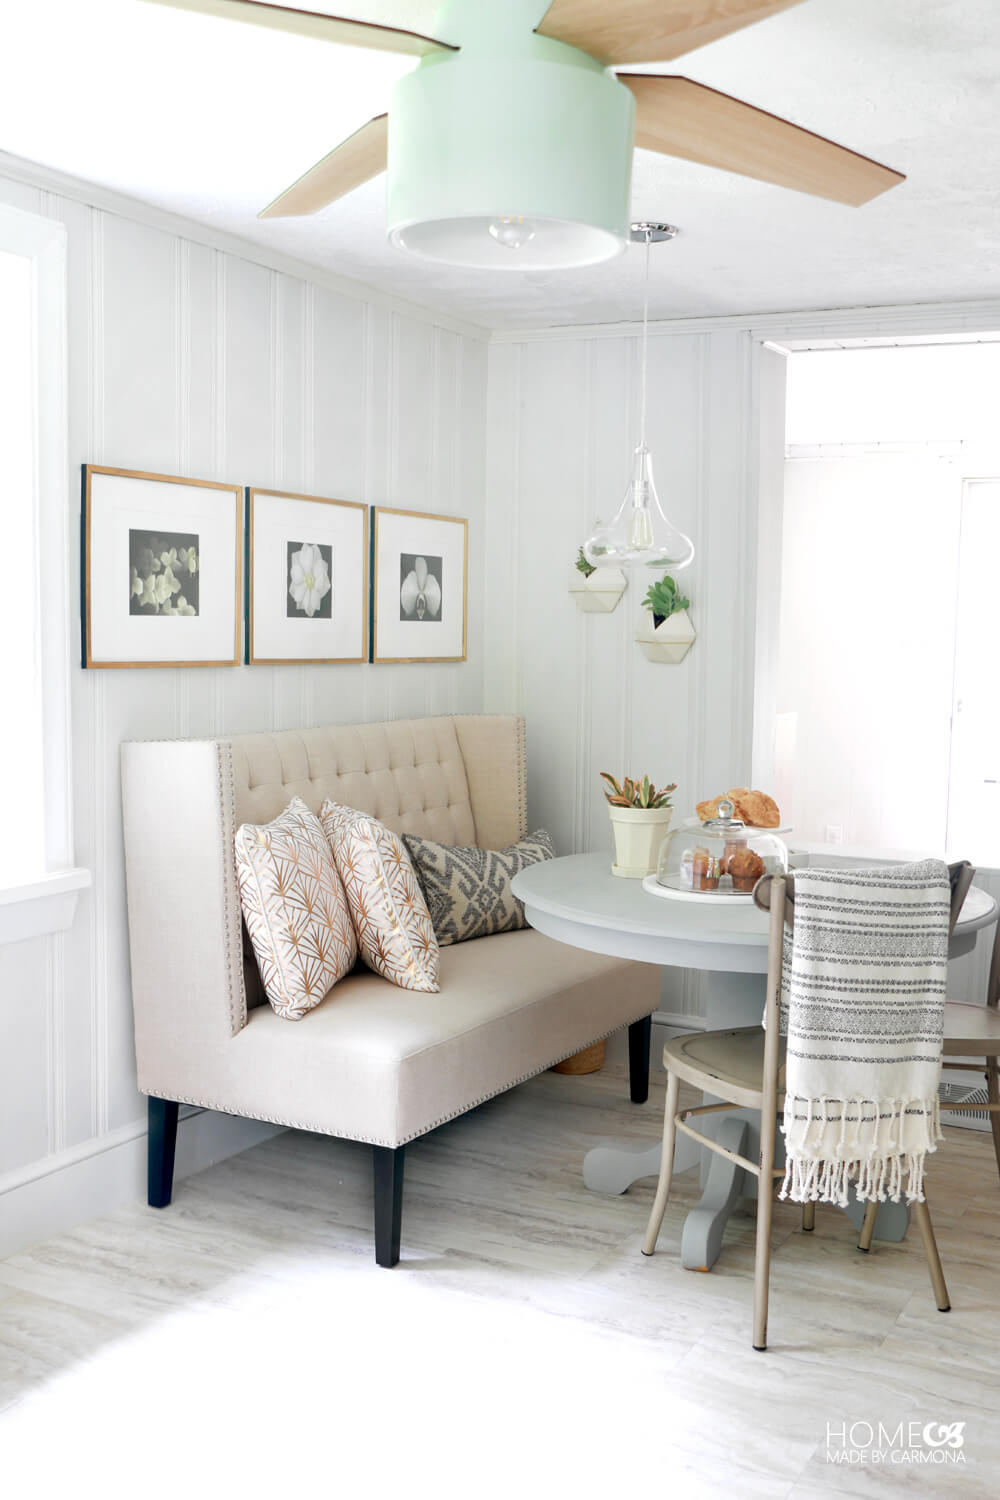 Eat-in breakfast nook - small kitchen makeover